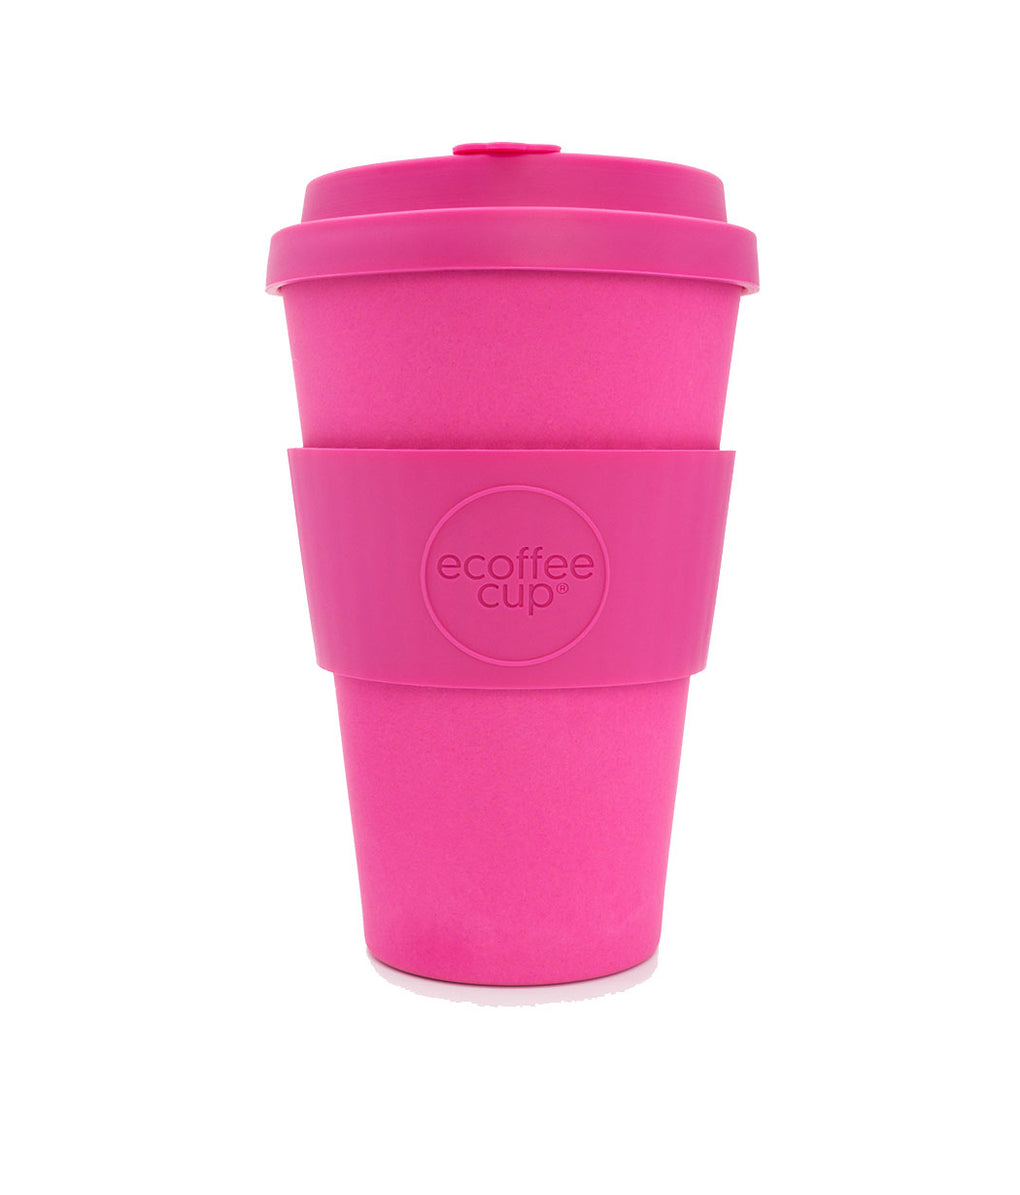 Ecoffee Cup - Take away muki 400 ml - Pink´d